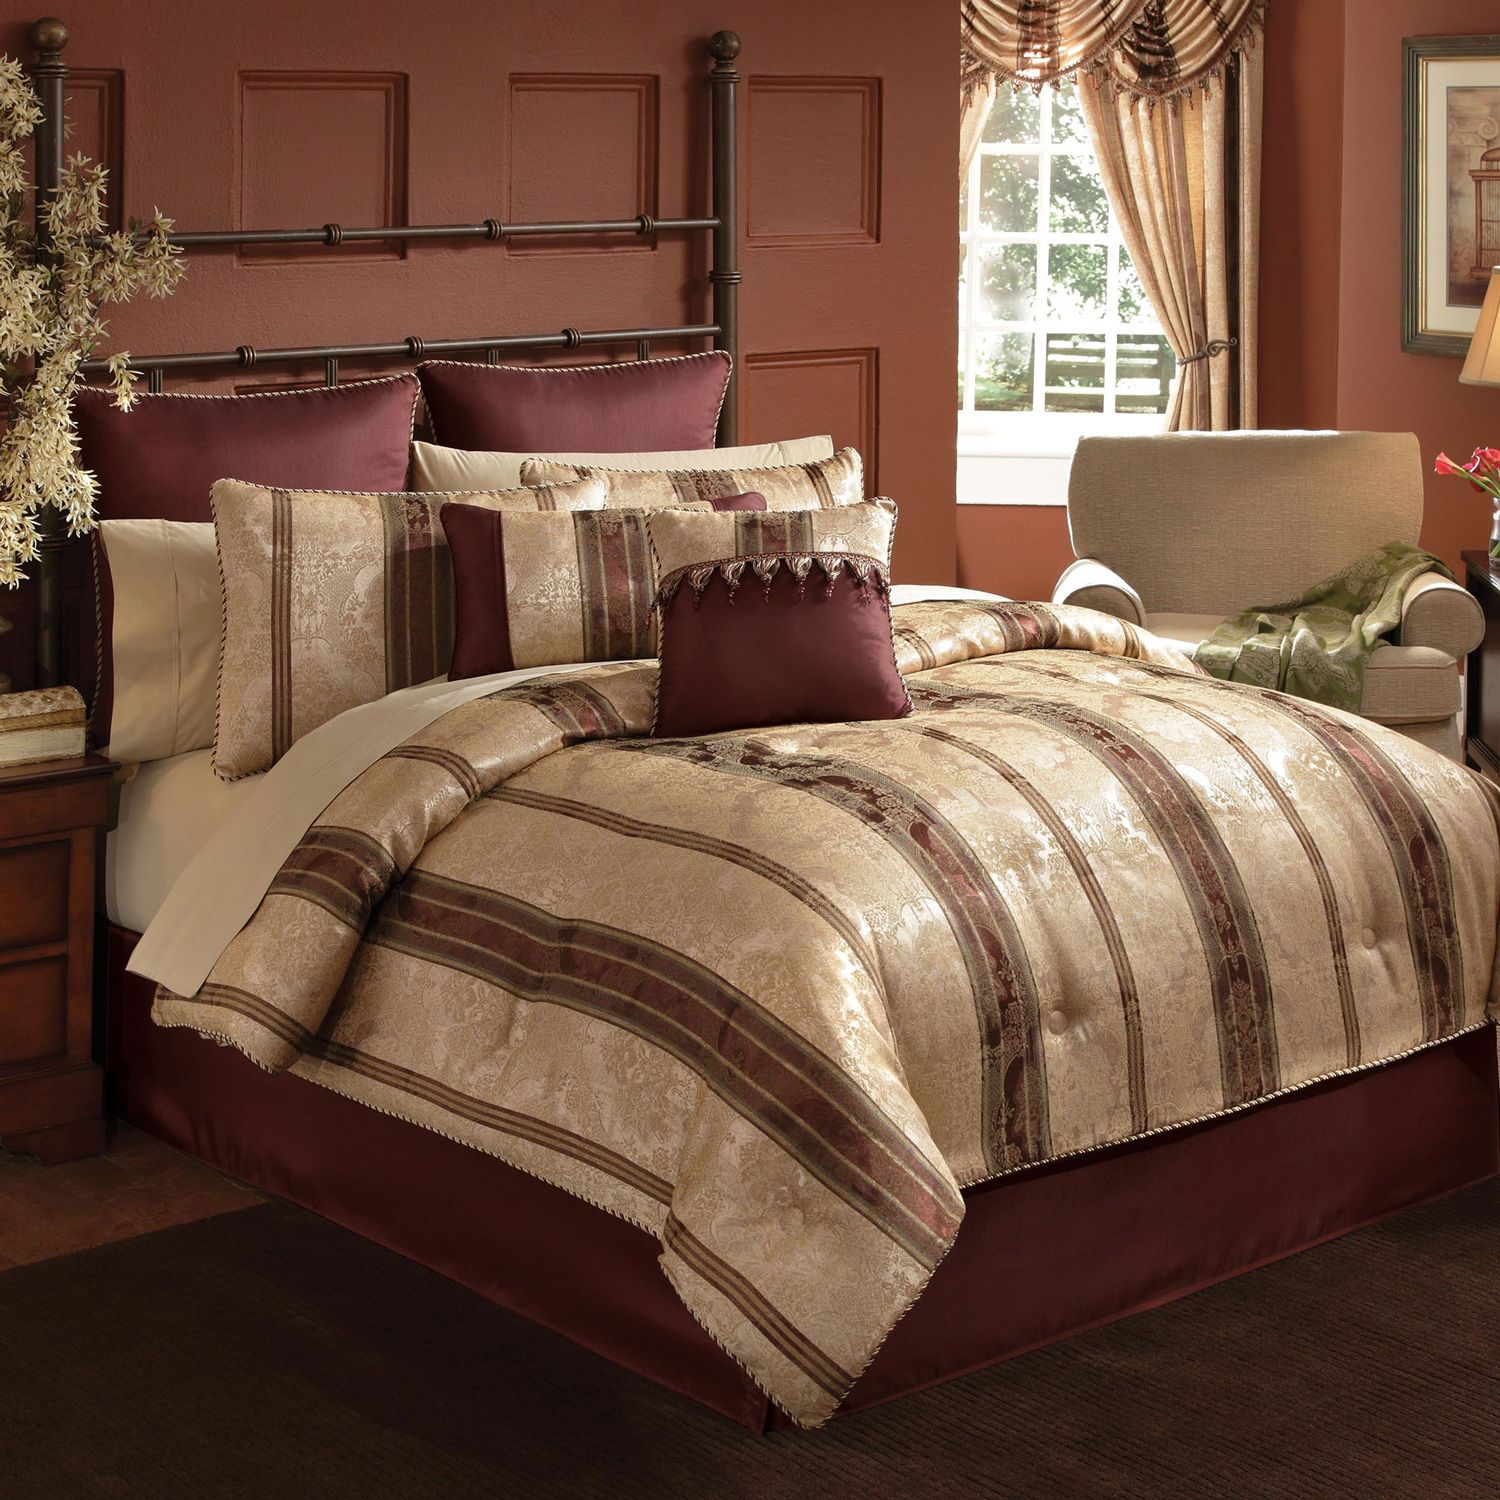 Great california king bedding for bedroom design with california king bed frame